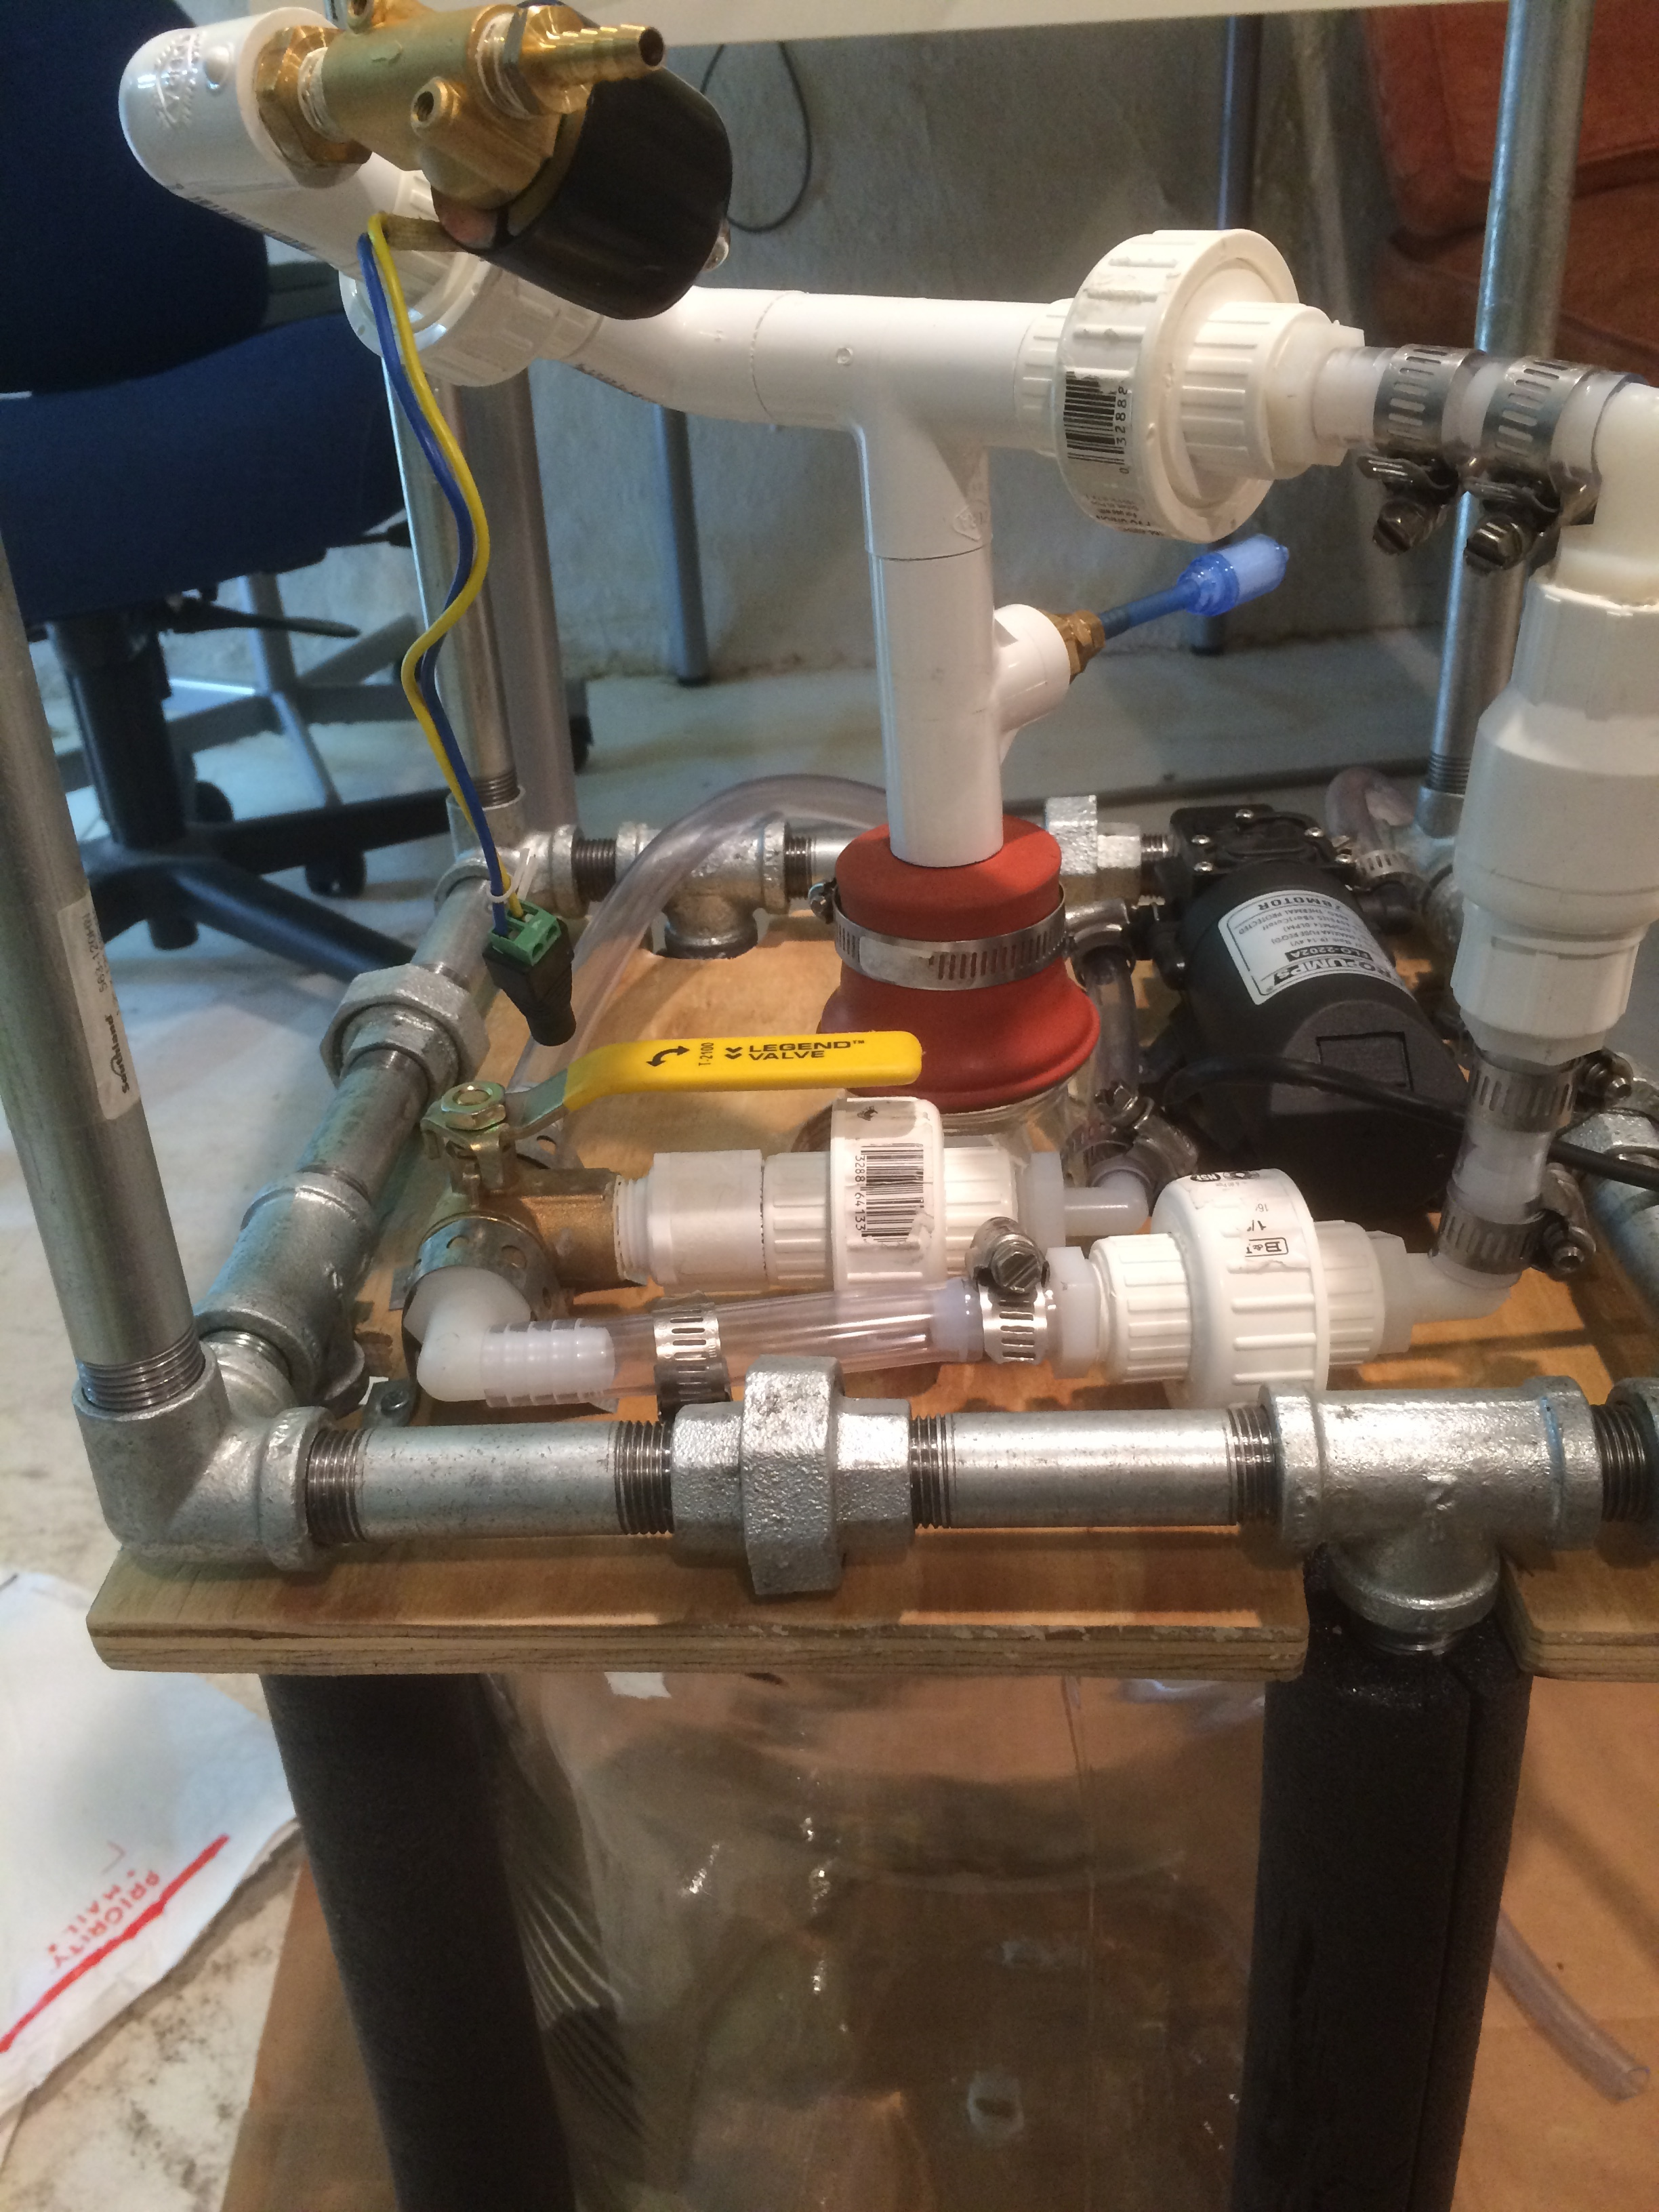 A diaphragm pump was chosen to circulate the liquids because they are self-priming and less-detrimental to bacterial populations than centrifugal pumps. 3-way valves controlled flow & filling (manually) and a solenoid valve controlled the dispensing of the liquid culture.